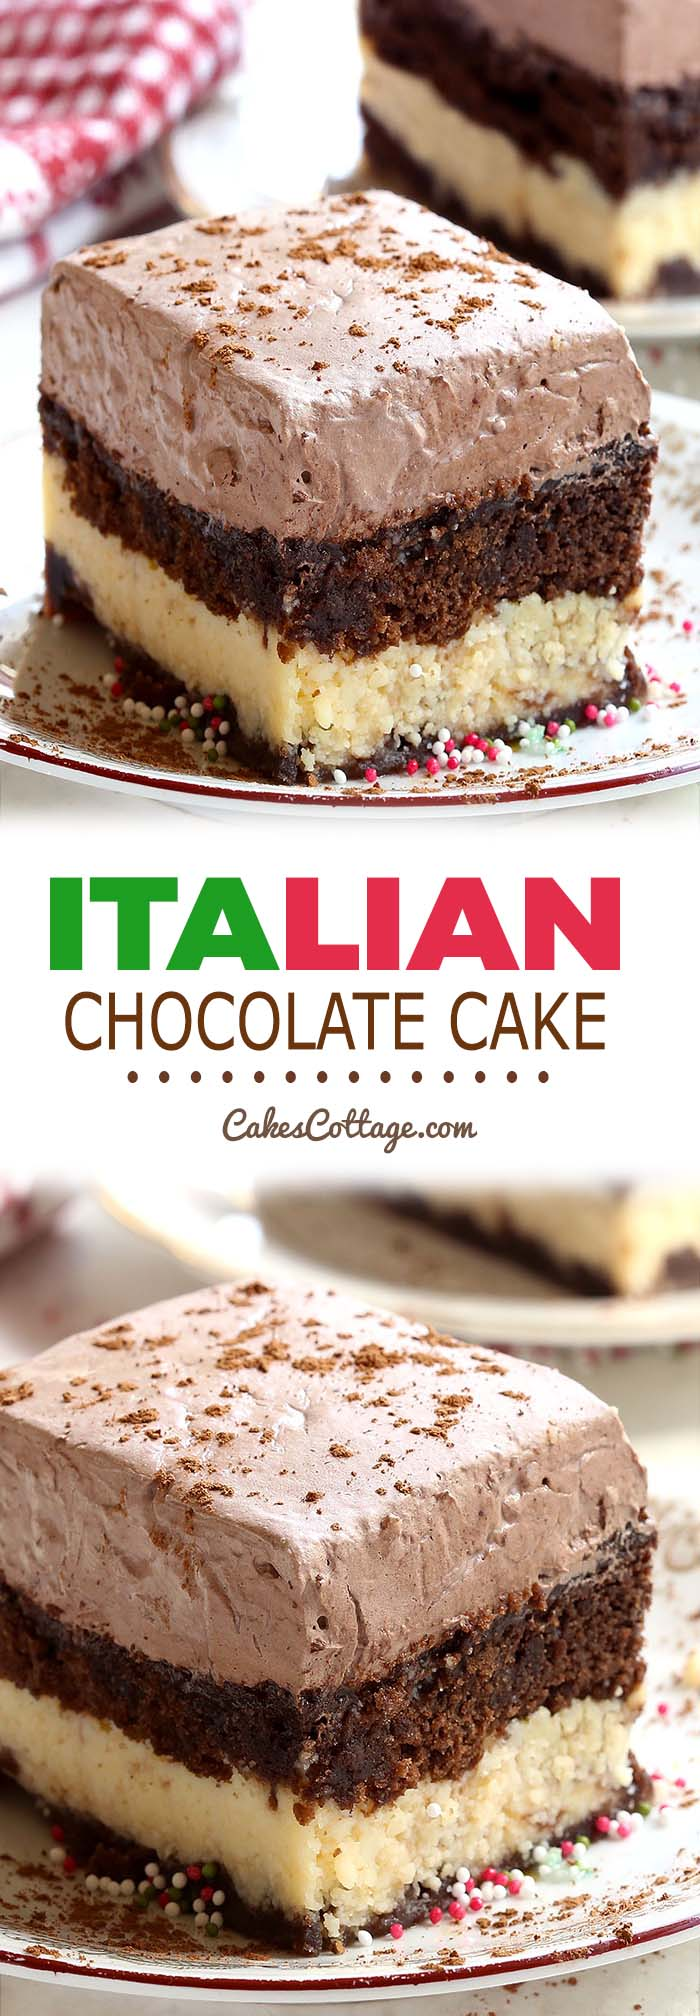 Italian Chocolate Cake | Recipe | Italian chocolate ...